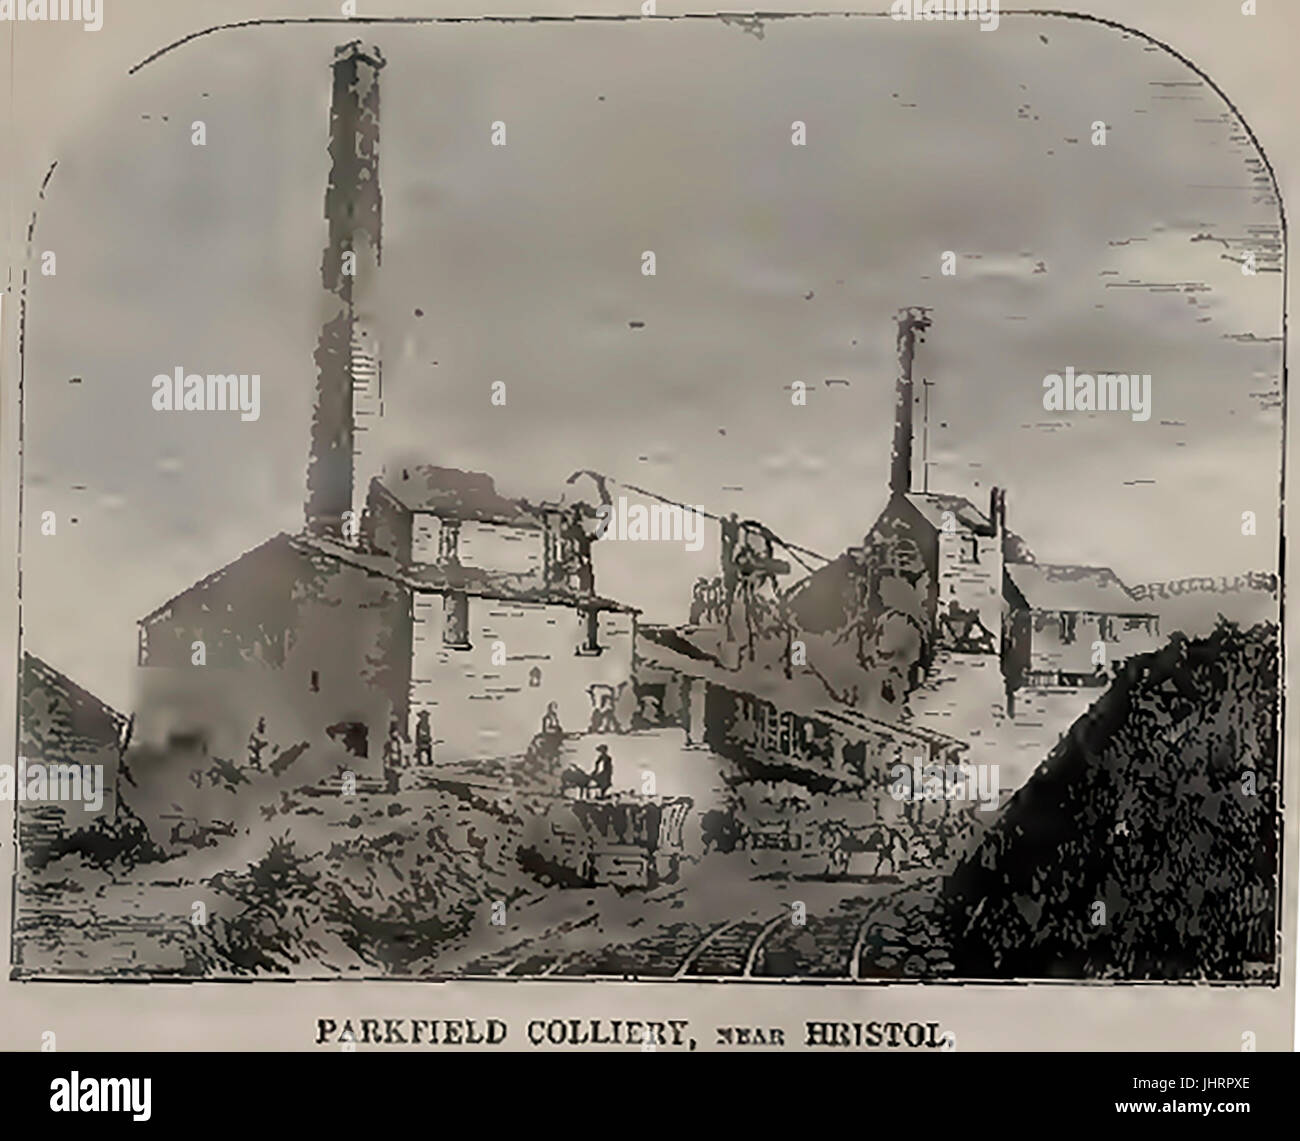 A wash illustration of former Parkfield colliery Bristol, UK - Stock Image